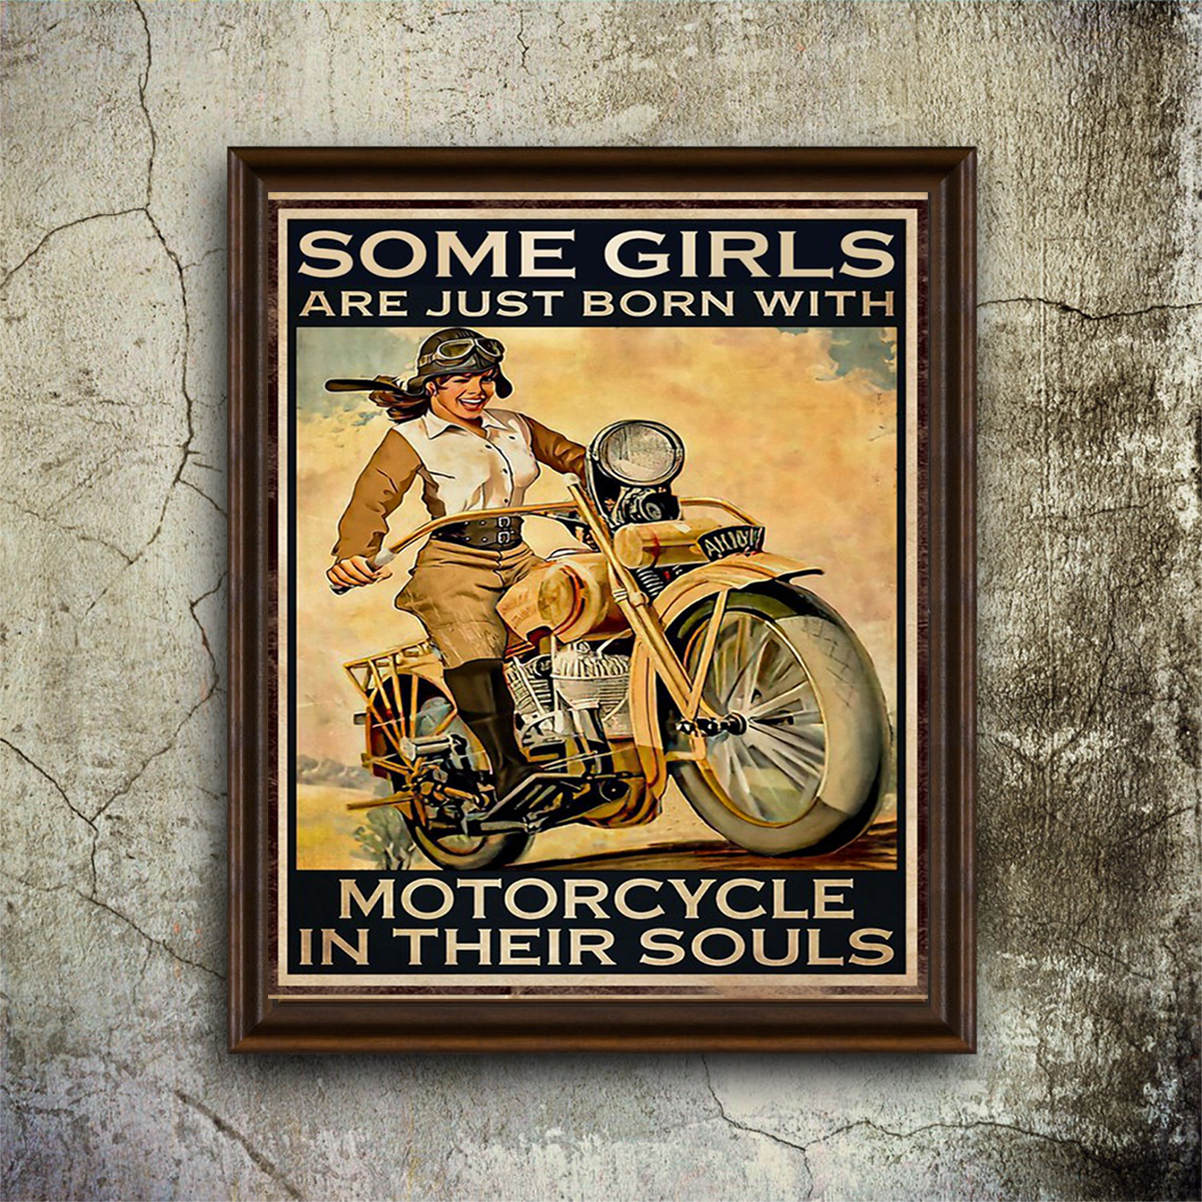 Some girls are just born with motorcycle in their souls poster A1